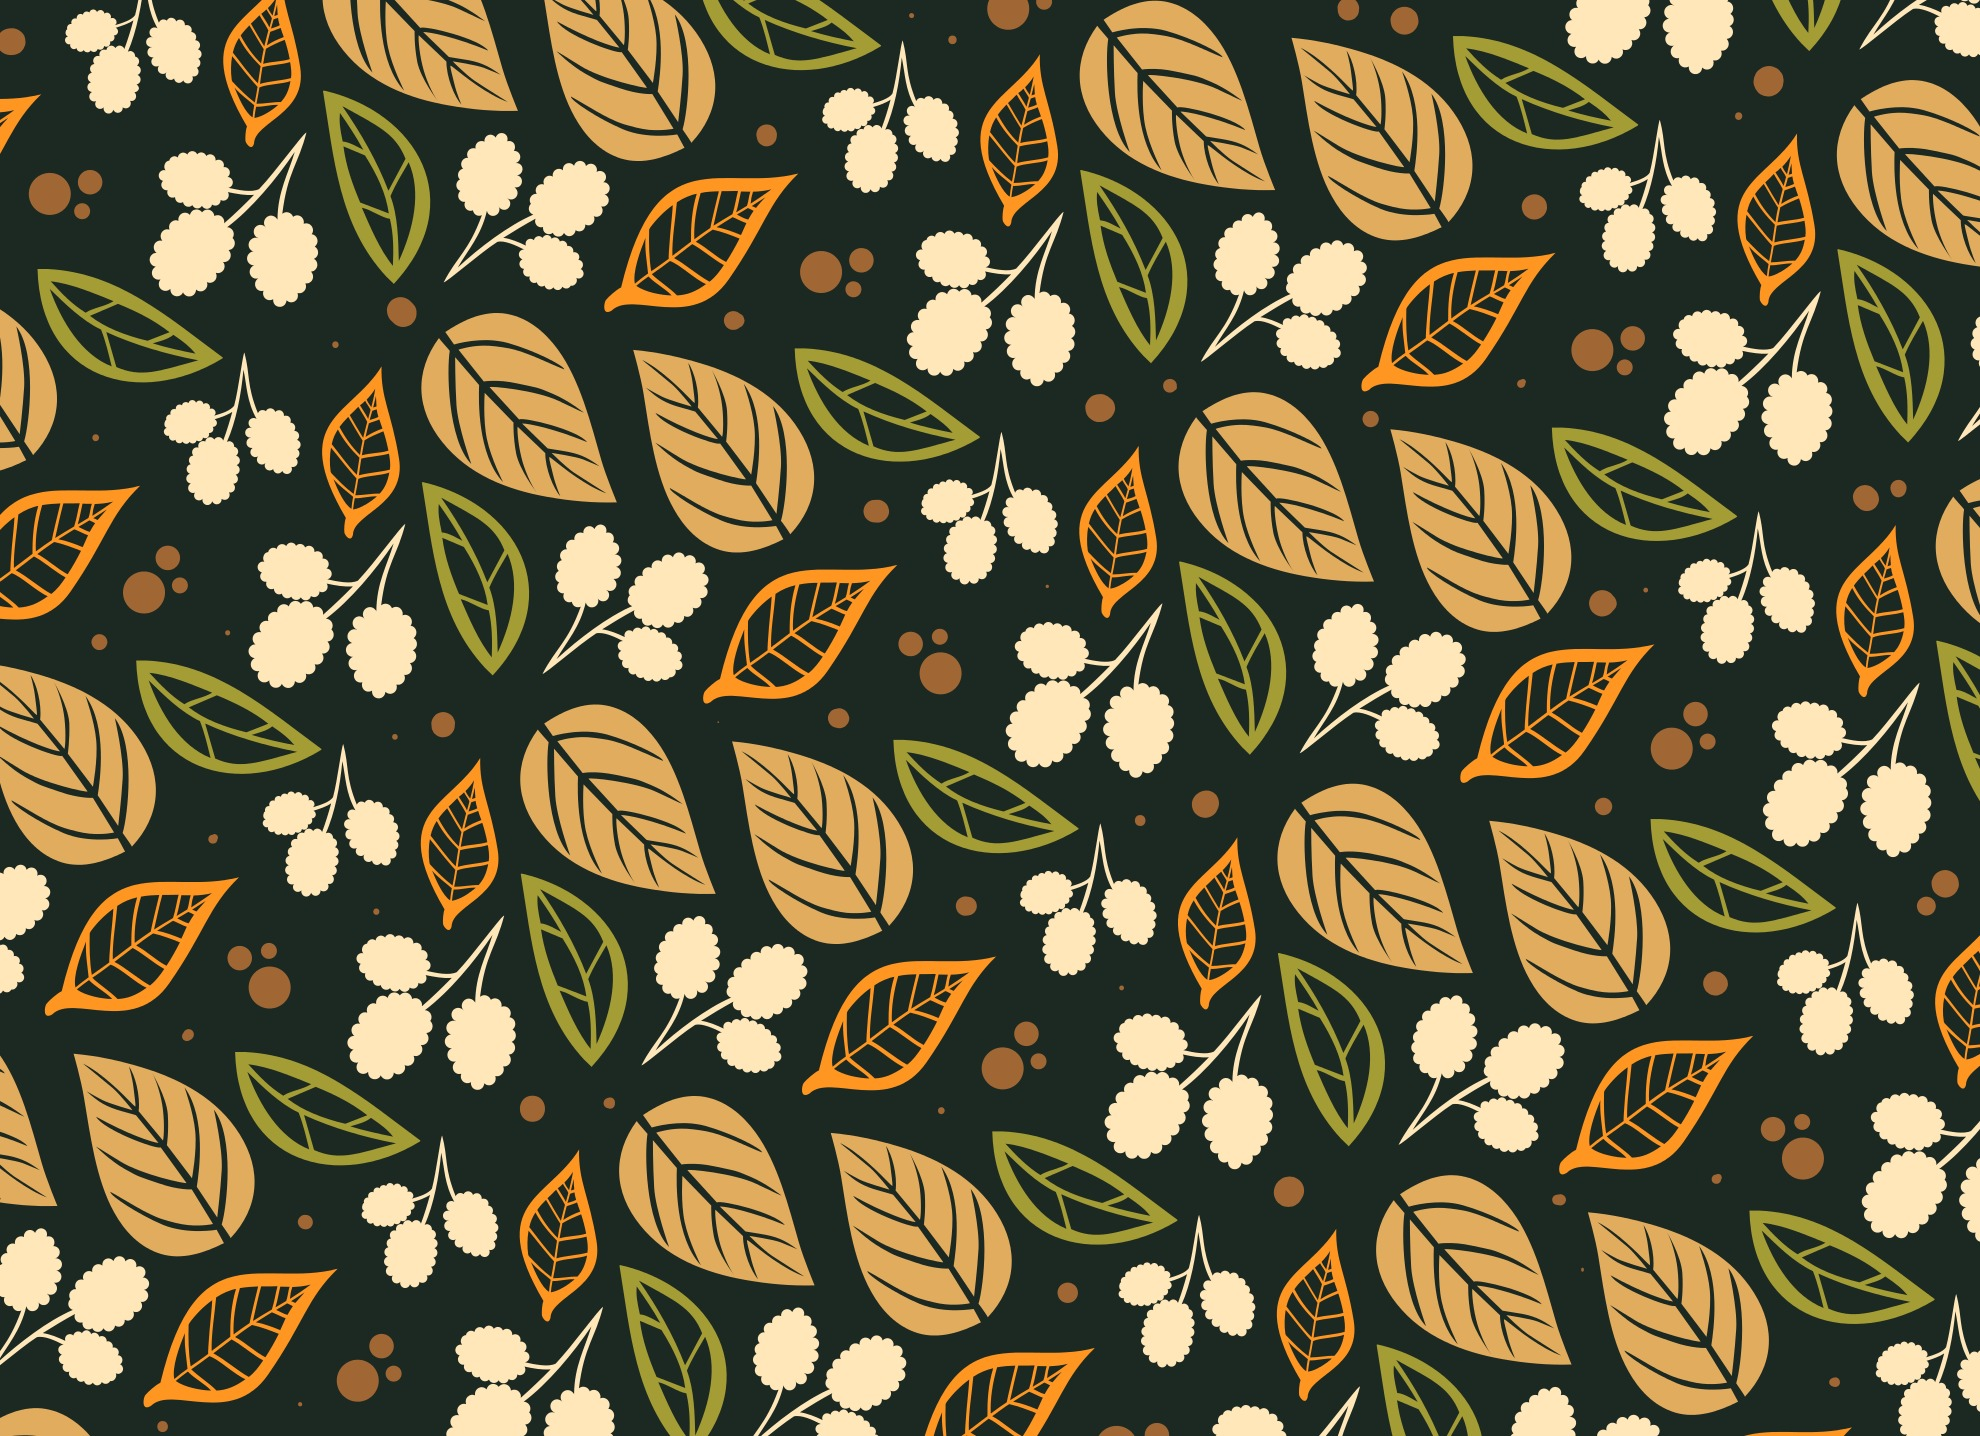 Sketchy Fall Vector Background Download Free Vectors Clipart